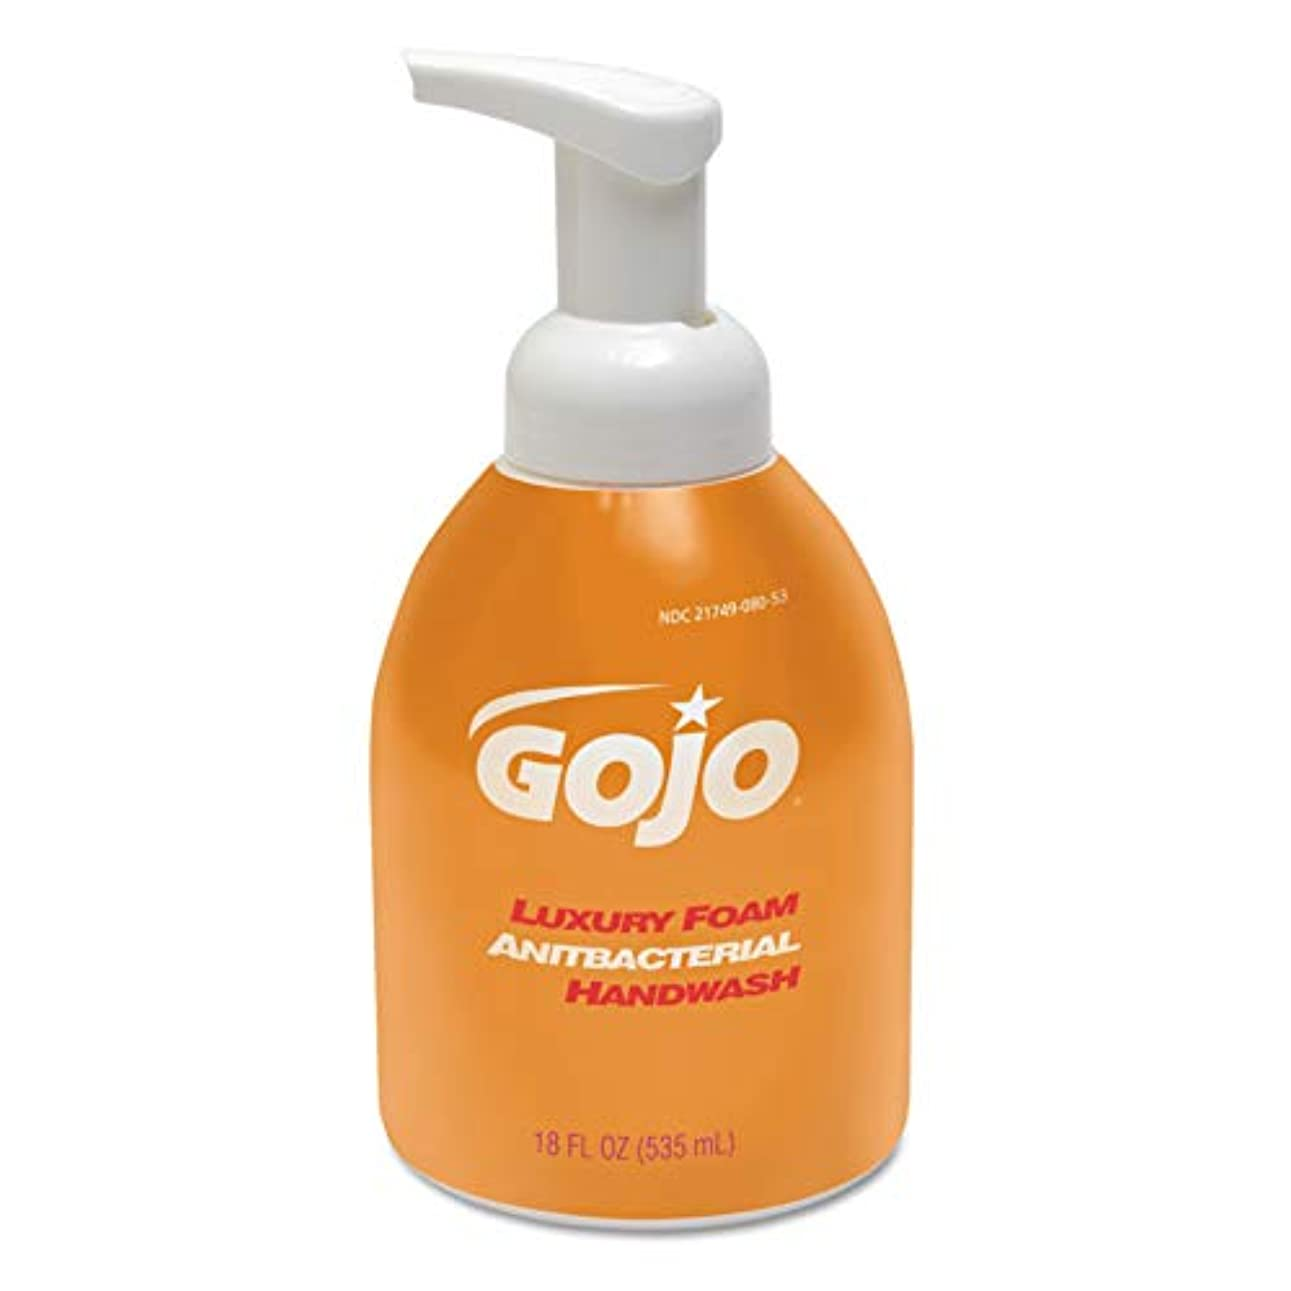 Luxury Foam Antibacterial Handwash, Orange Blossom, 18 oz Pump (並行輸入品)